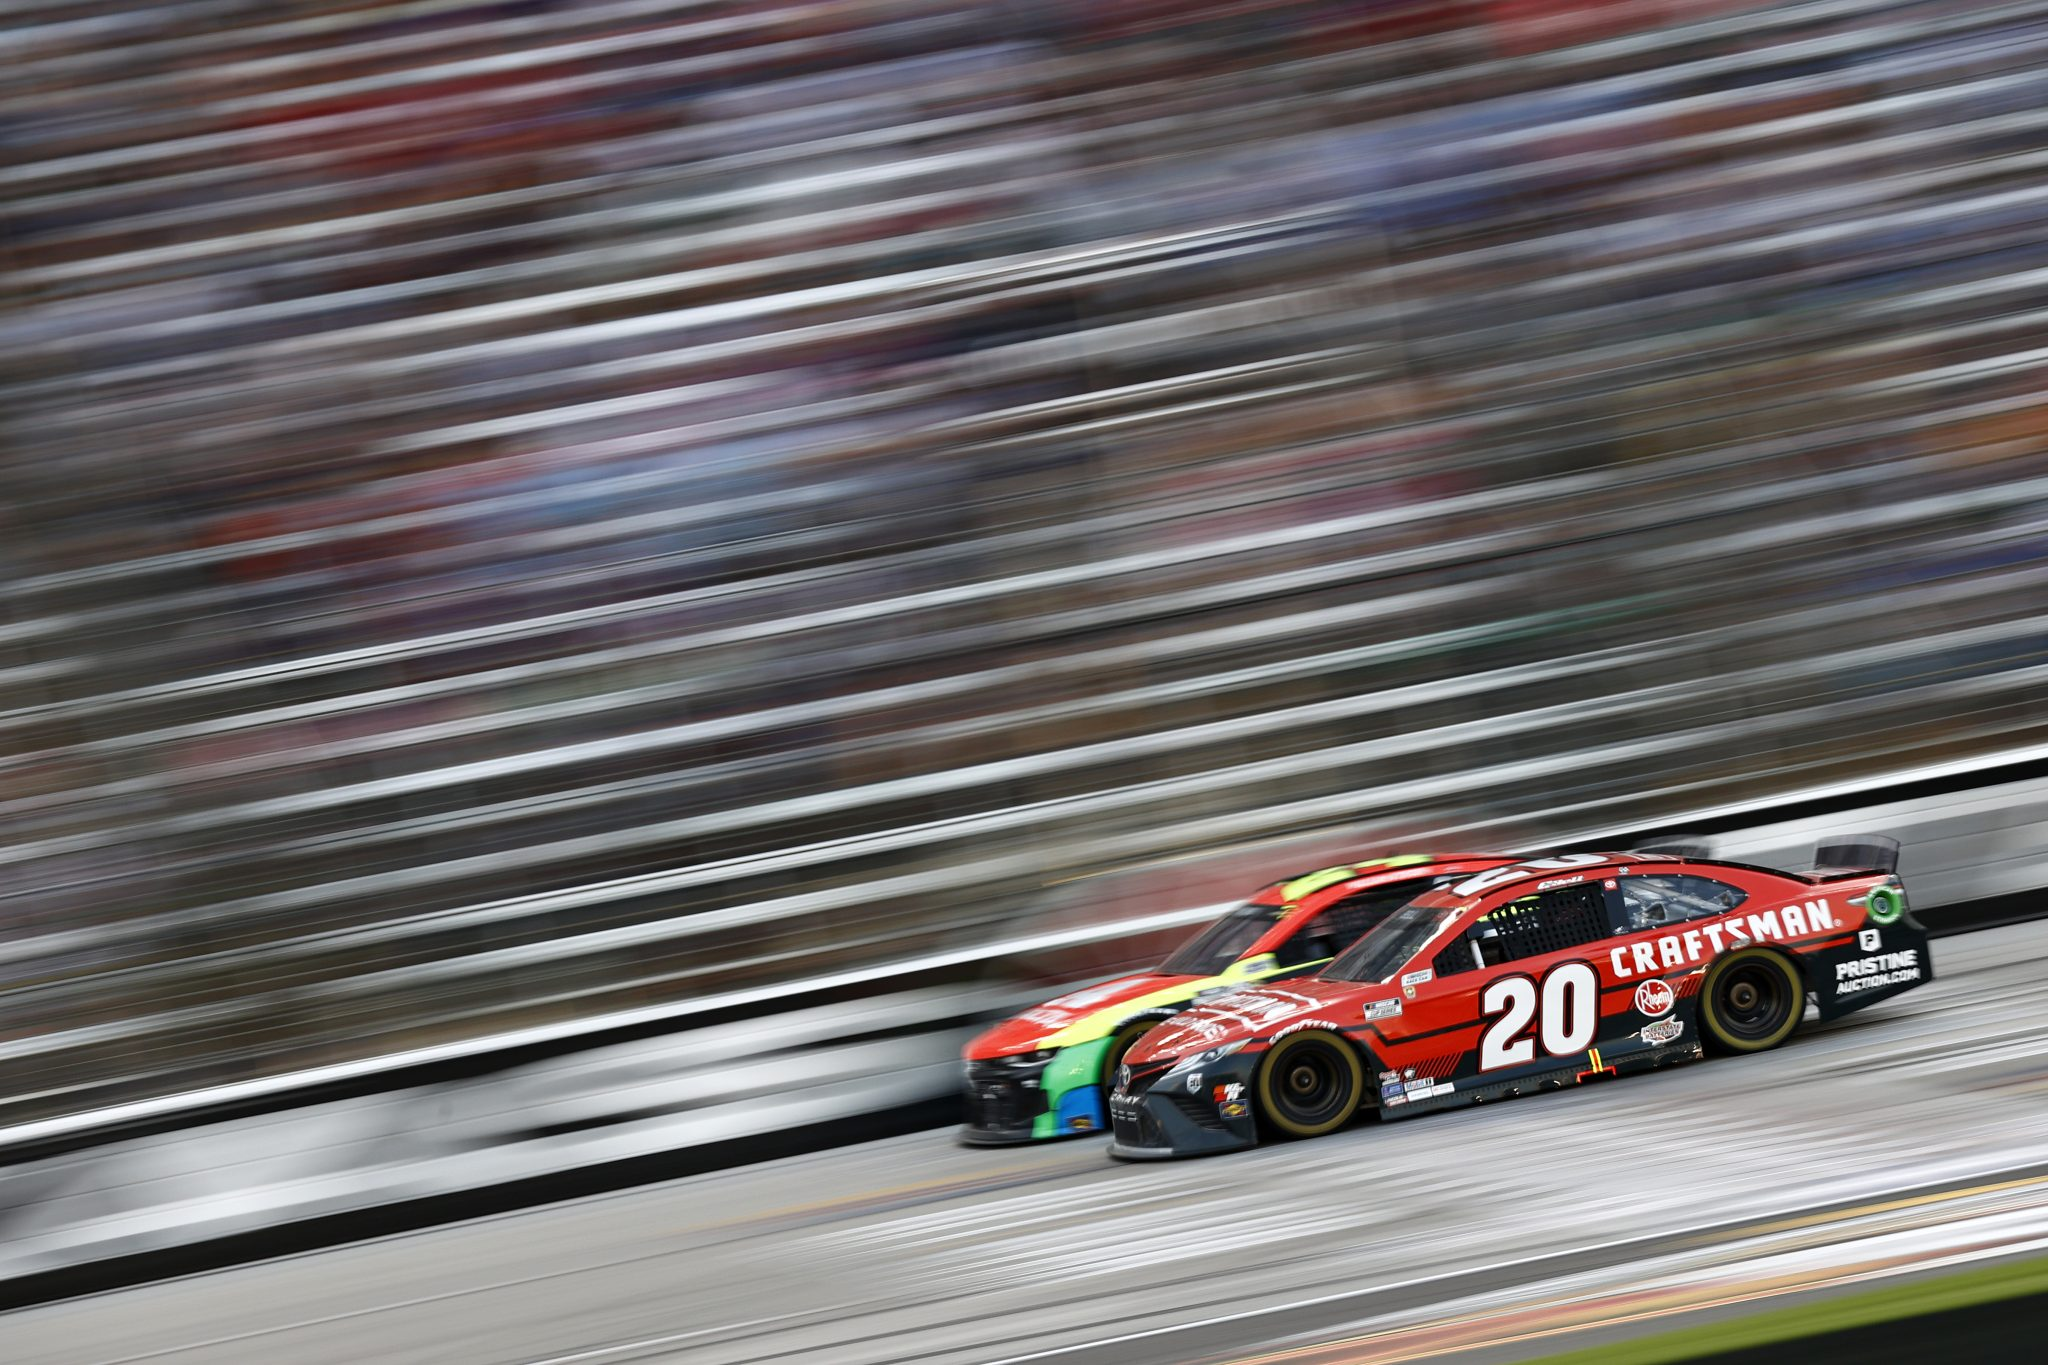 FORT WORTH, TEXAS - JUNE 13: Christopher Bell, driver of the #20 Craftsman Toyota,drives during the NASCAR All-Star Race at Texas Motor Speedway on June 13, 2021 in Fort Worth, Texas. (Photo by Jared C. Tilton/Getty Images) | Getty Images